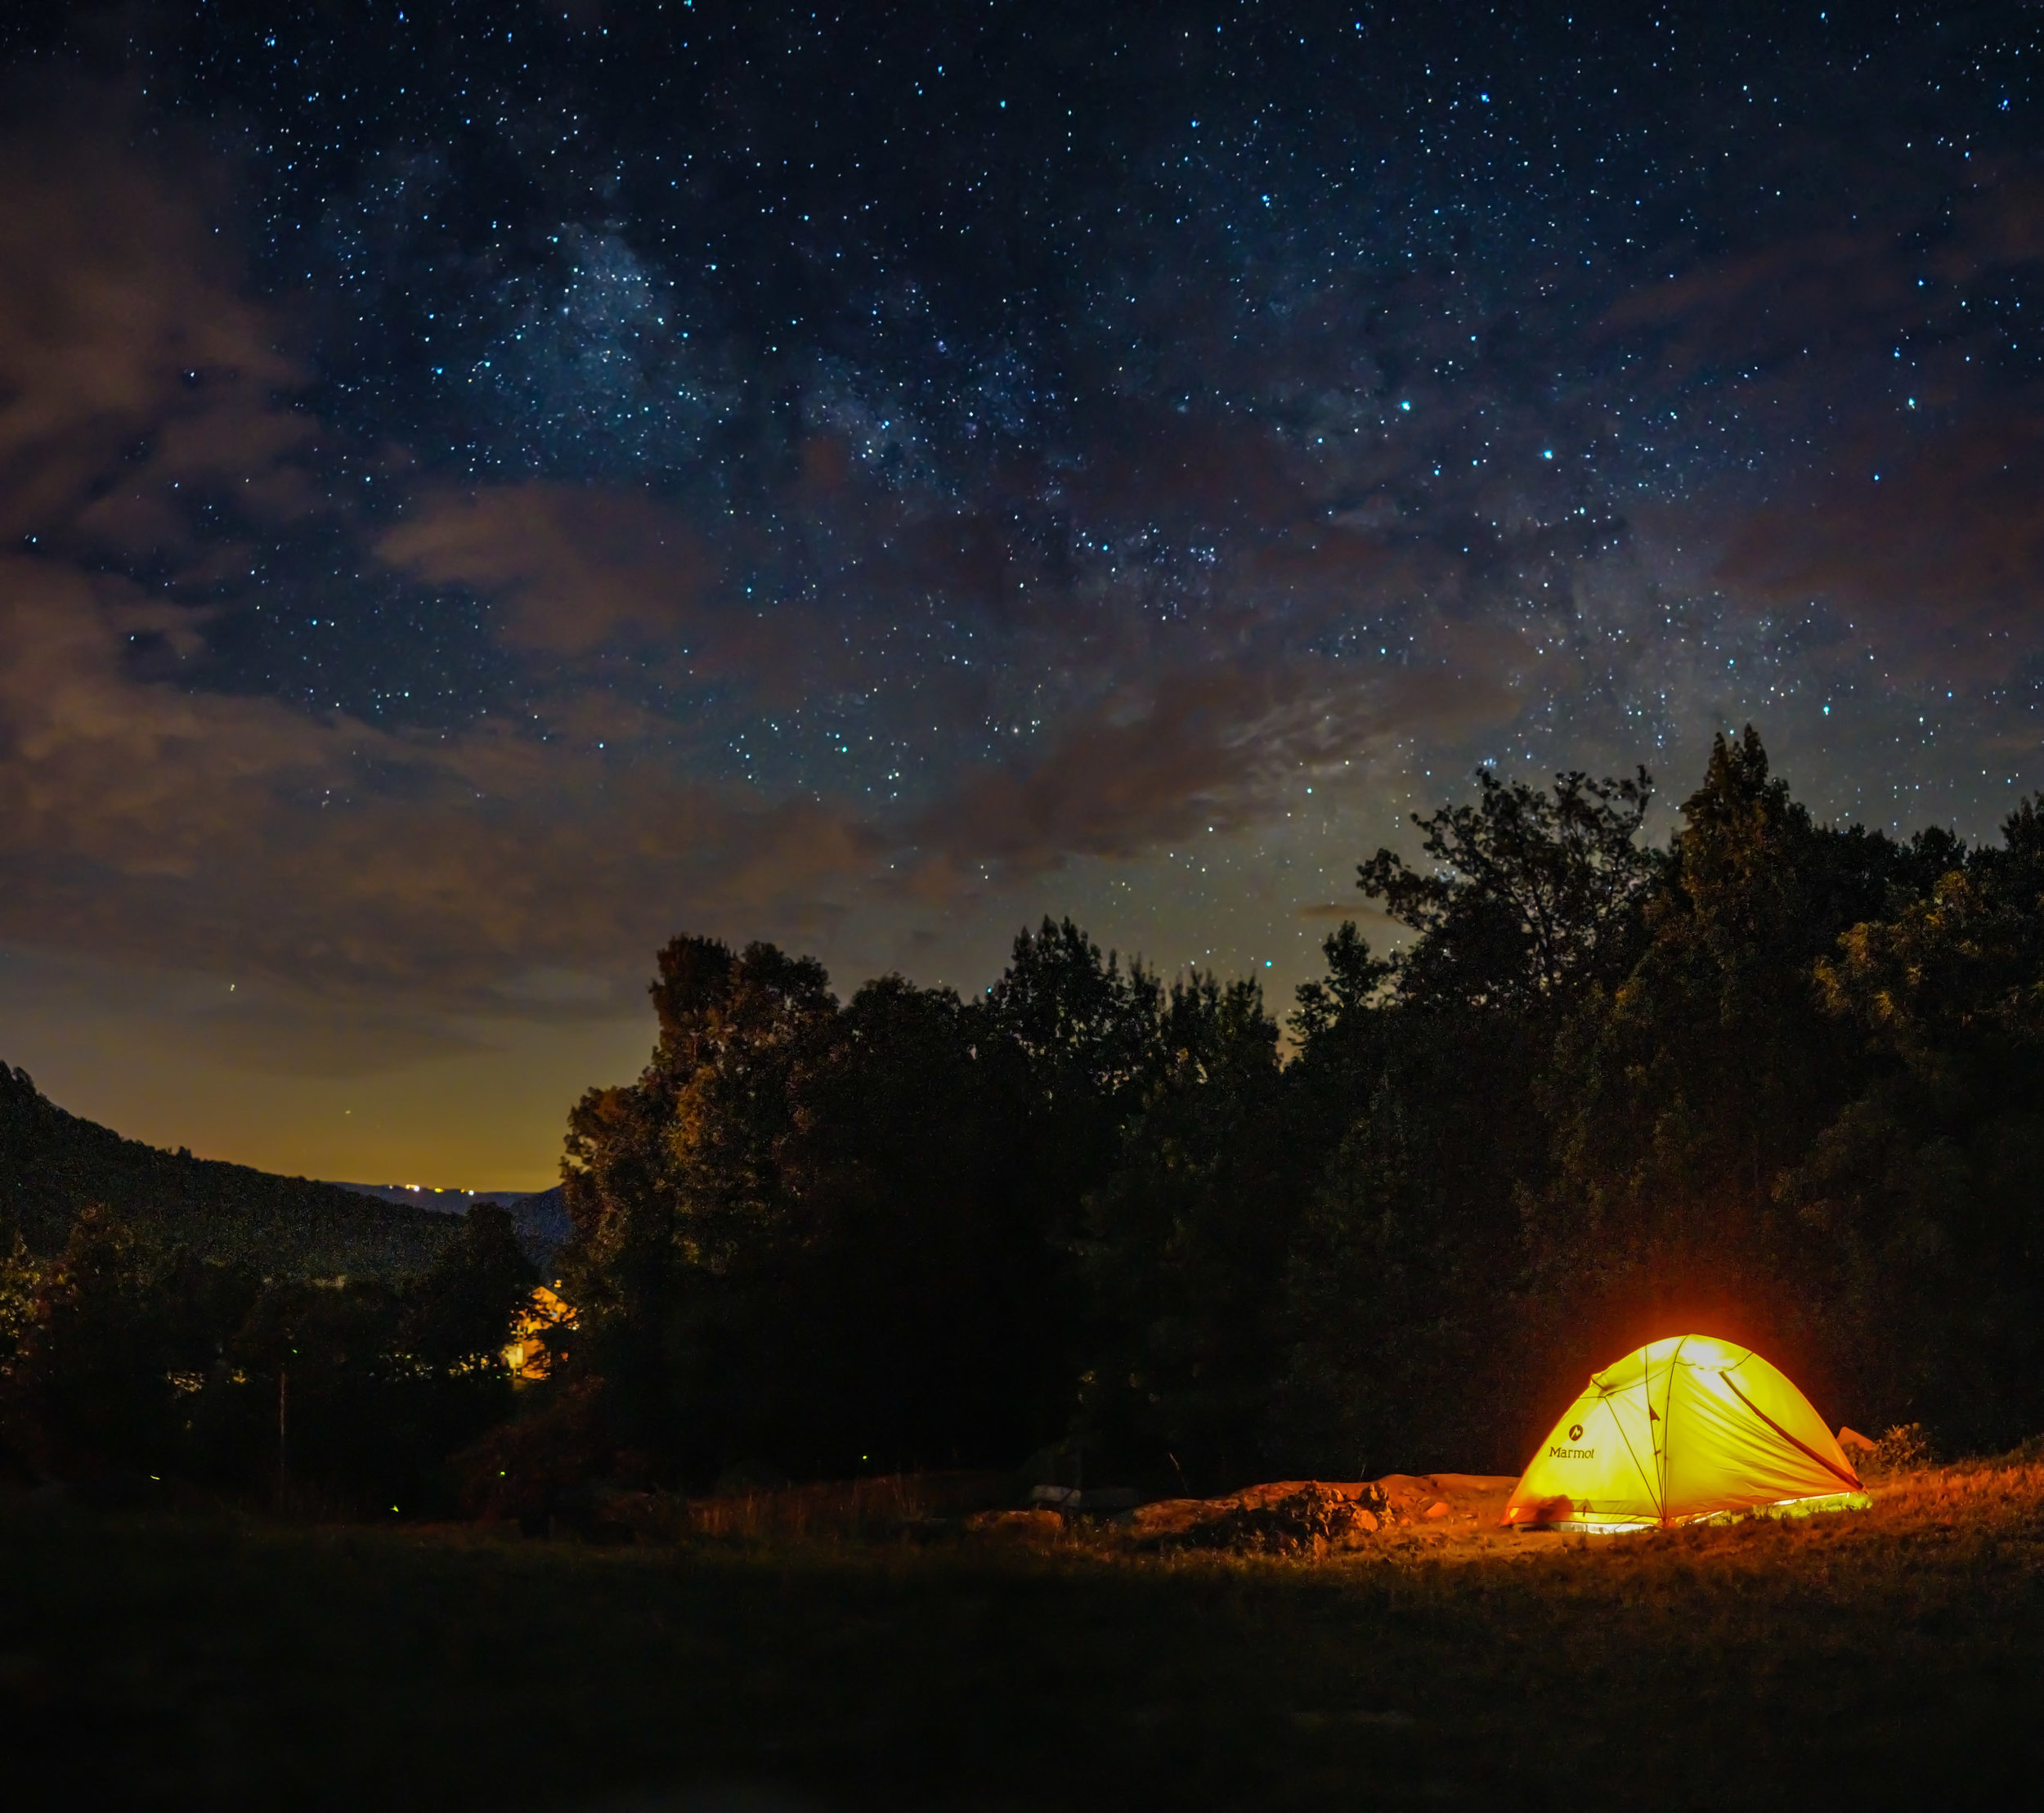 """""""A great many people, and more all the time, live their entire lives without ever once sleeping out under the stars.""""-Alan S. Kesselheim, Let Them Paddle: Coming of Age on the Water"""